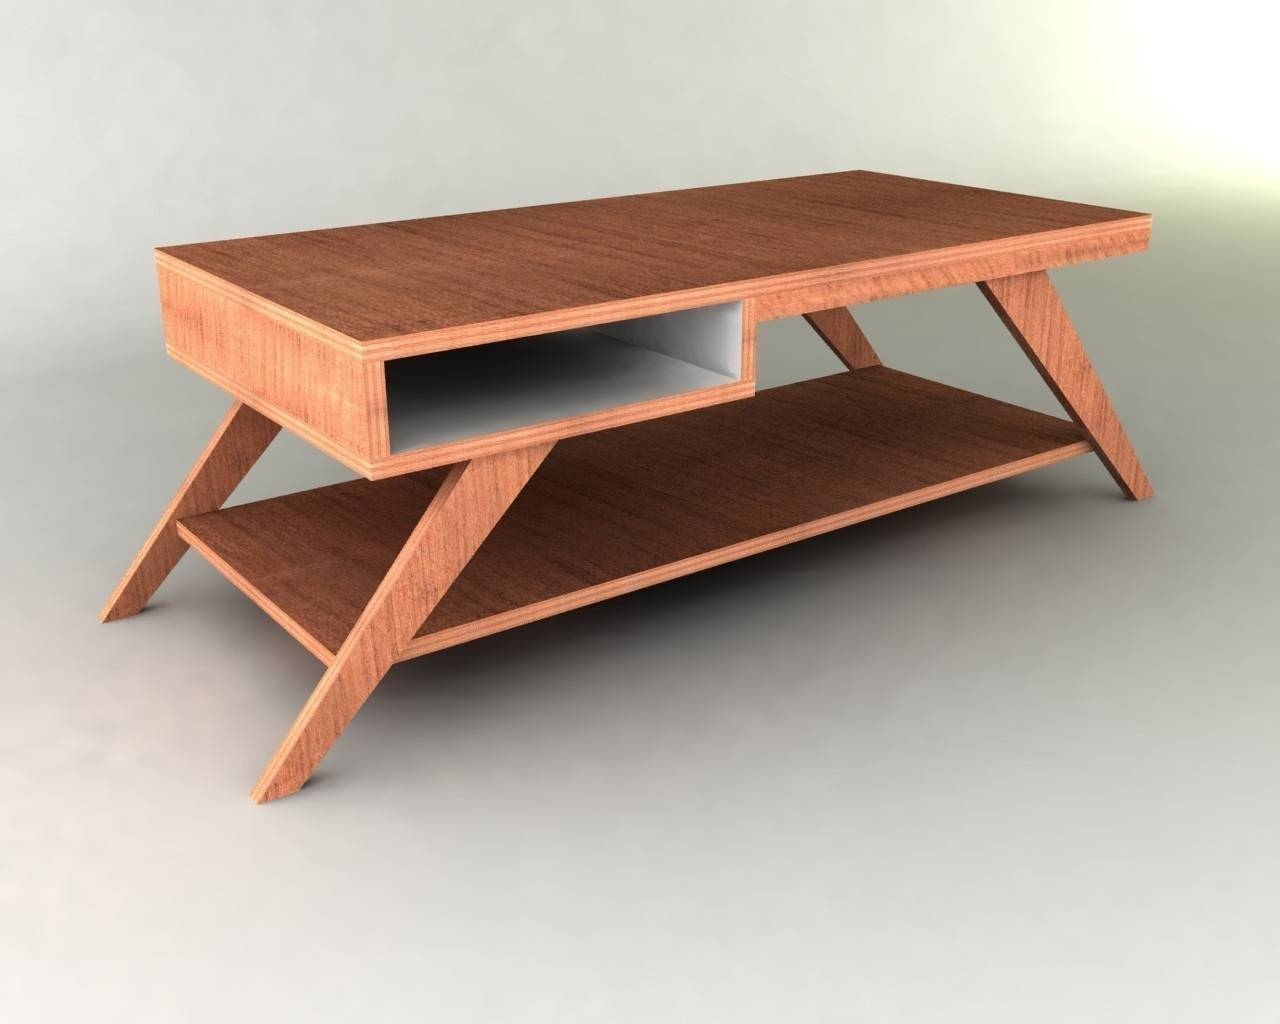 Unusual Wooden Coffee Tables pertaining to Quirky Coffee Tables (Image 29 of 30)